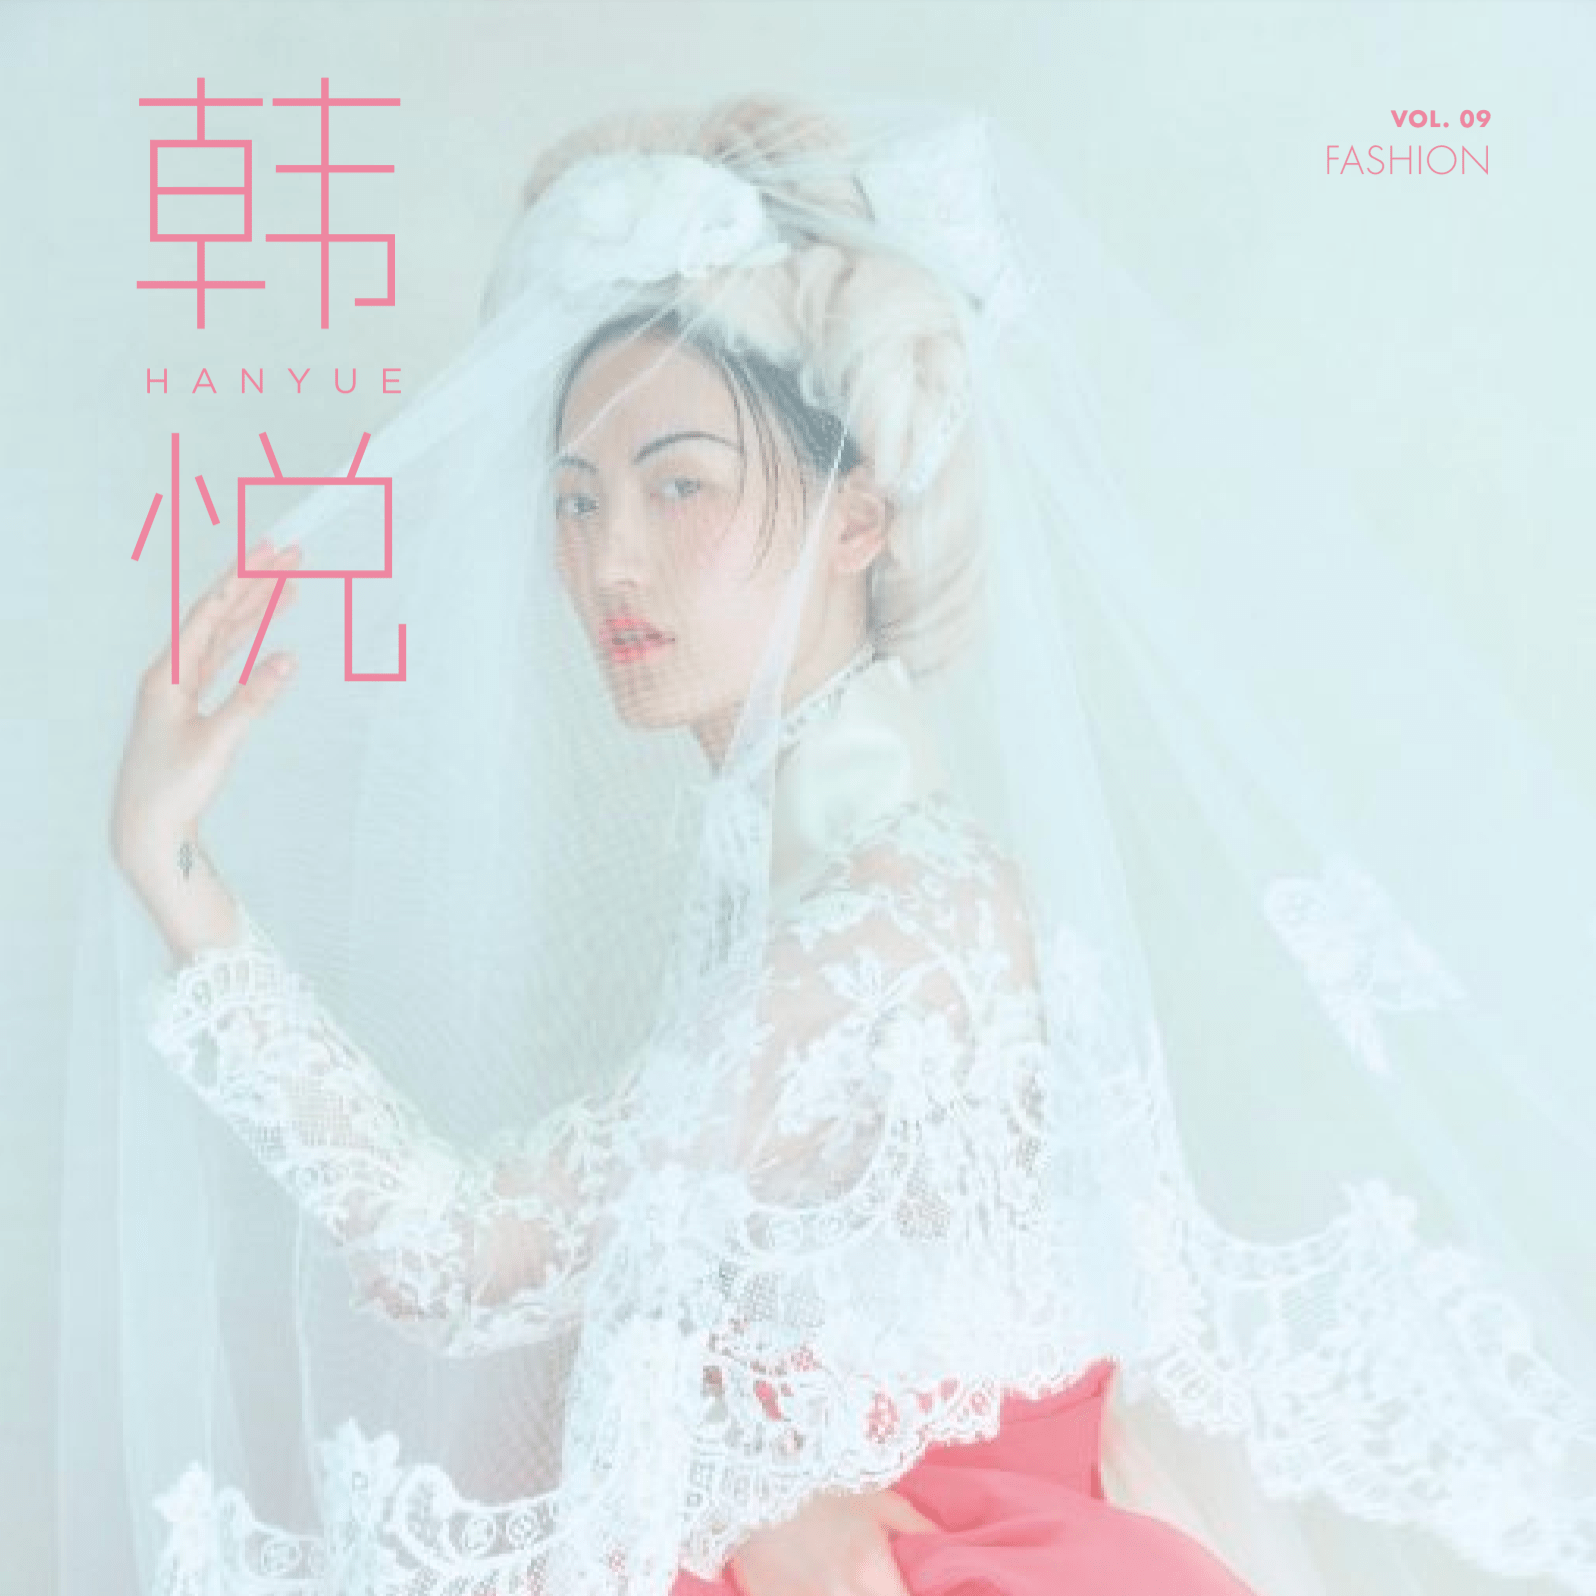 Hanyue Vol. 09 (2018) - Fashion - 104 pages